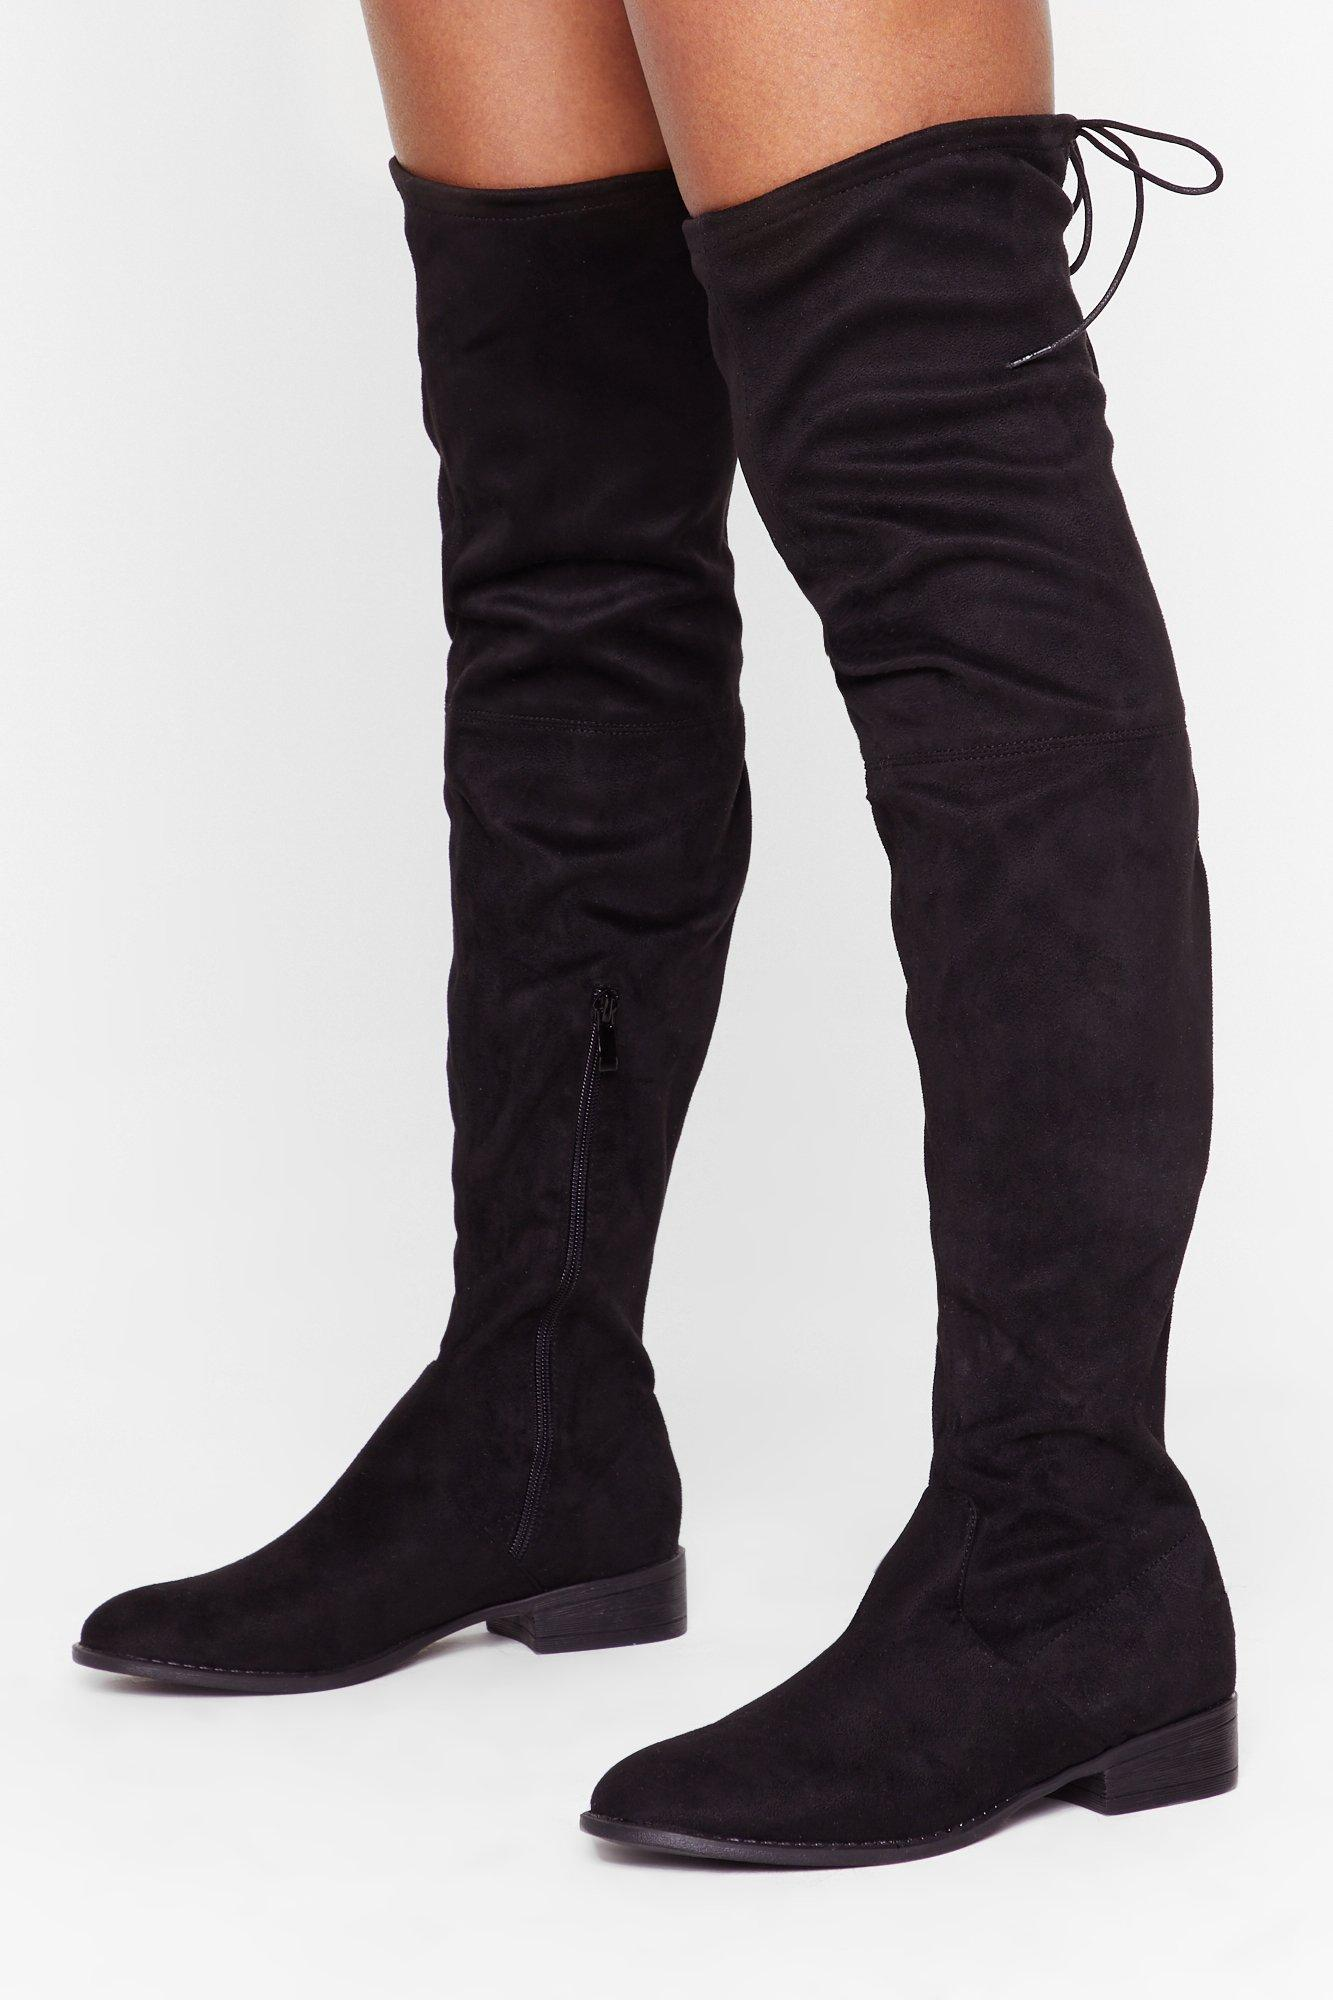 Image of Flatter Me Faux Suede Over-the-Knee Boots